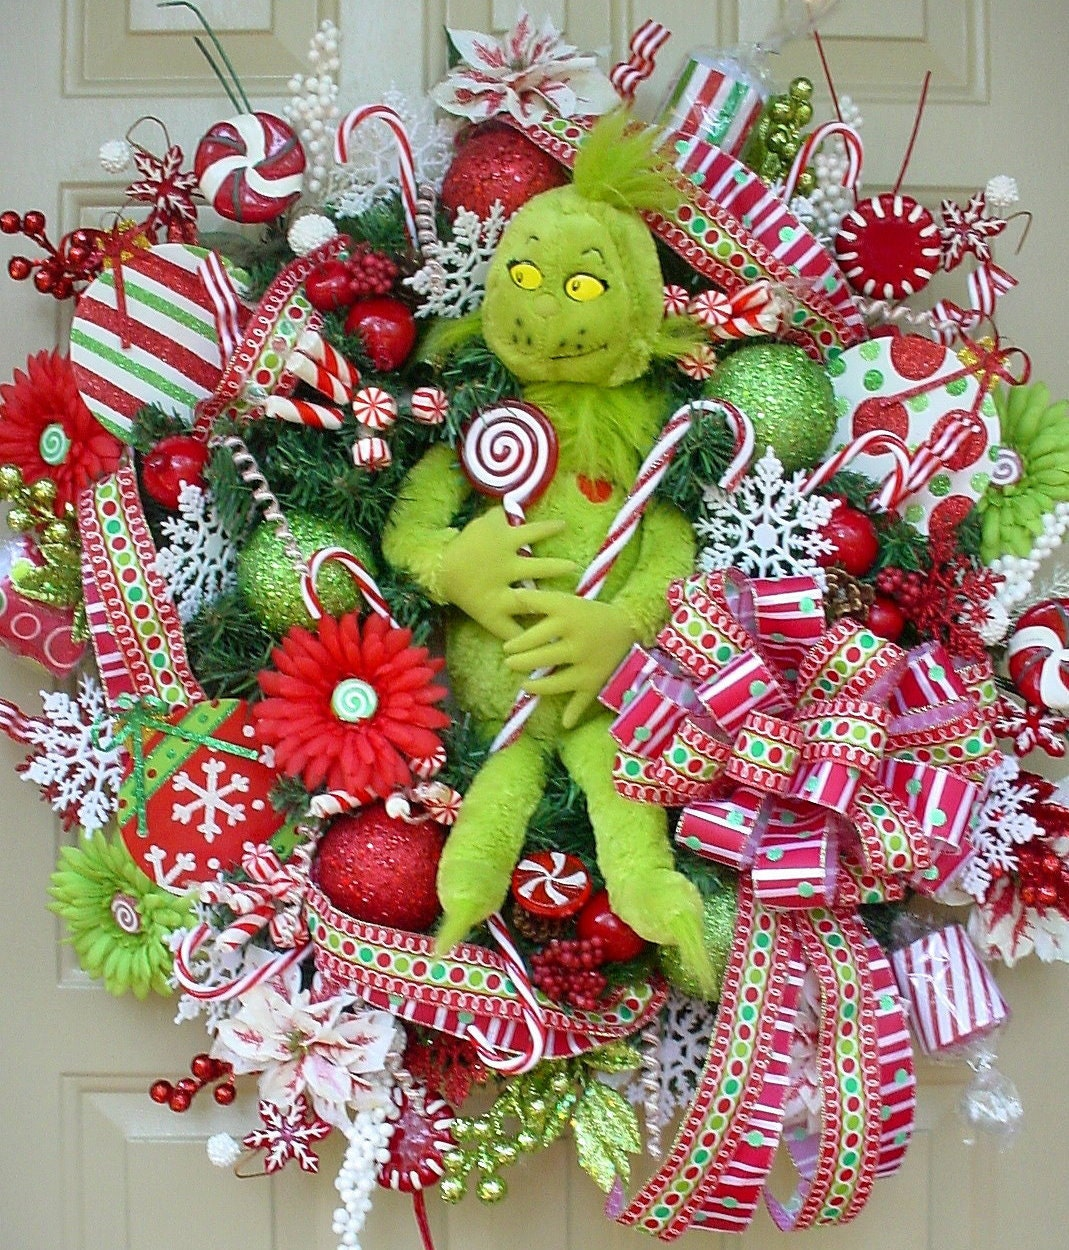 Christmas Decorations The Grinch: Who Stole Christmas-Grinch Holiday Christmas Wreath-Bright